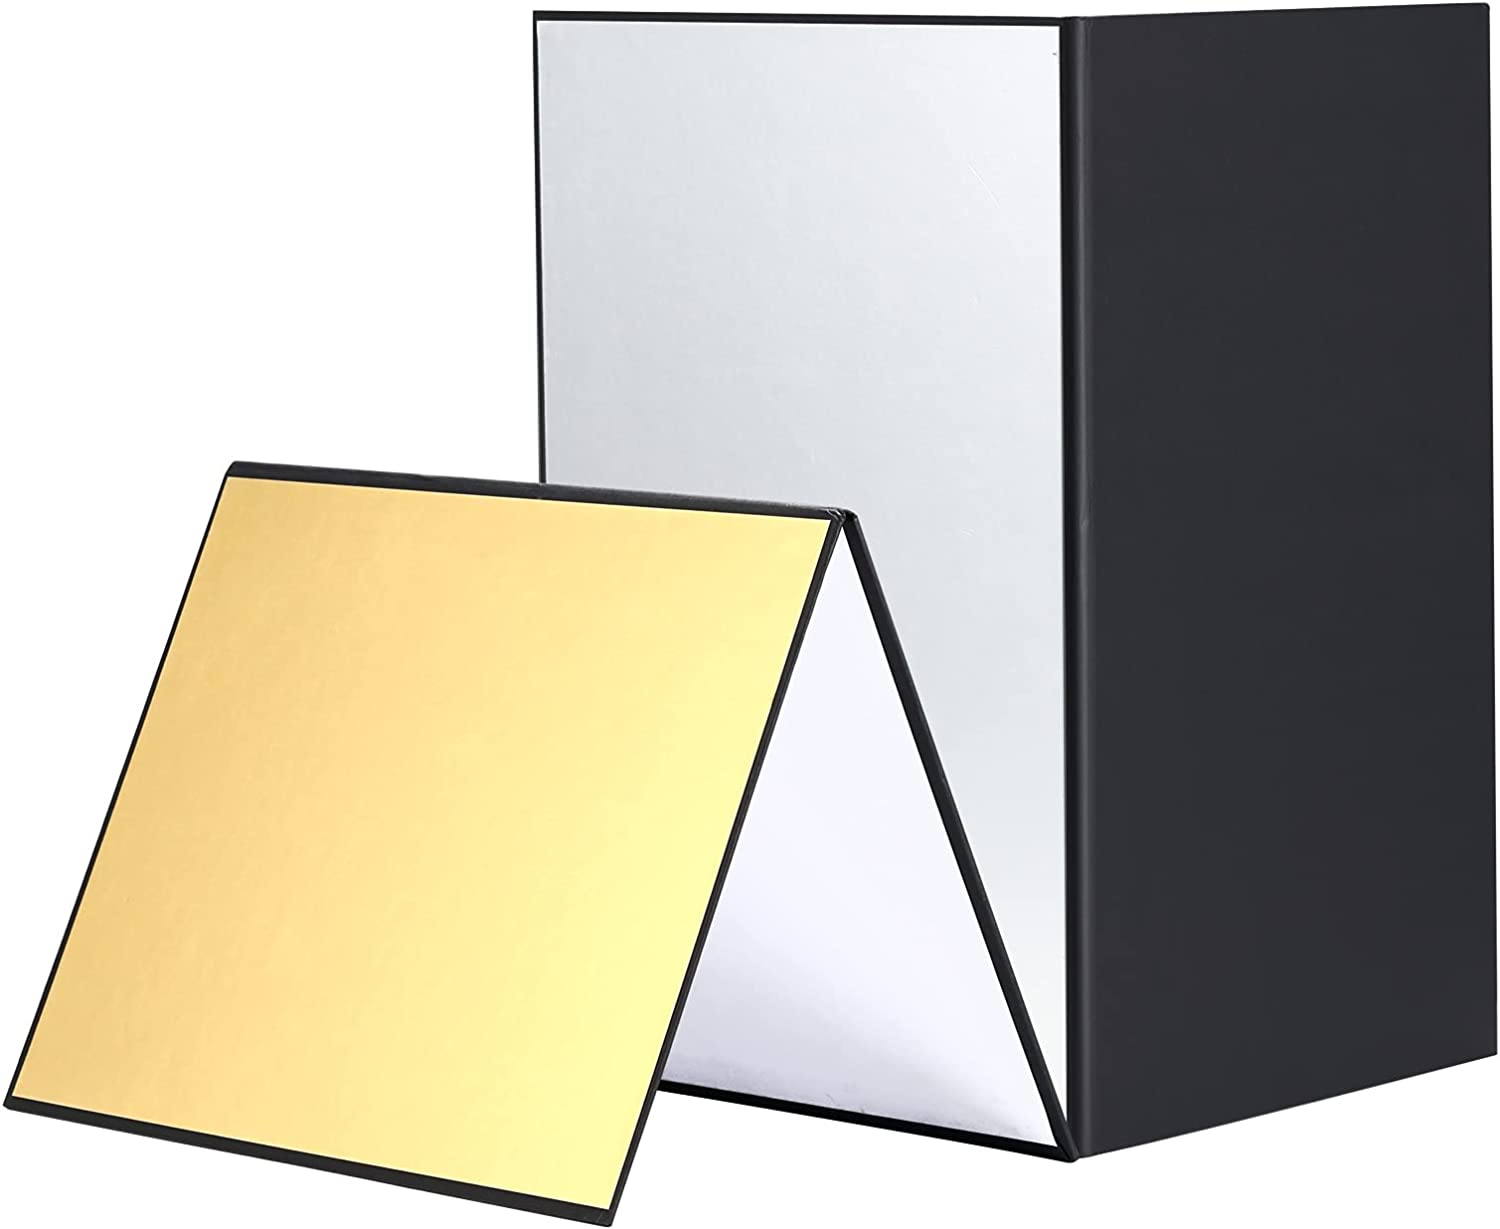 """Soonpho 2 pcs Light Reflector Photography Cardboard, 12"""" x 8""""/30 x 20cm Studio Folding Light Diffuser Board for Still Life, Product and Food Photo Shooting -Silver/Gold/White/Black : Camera & Photo"""